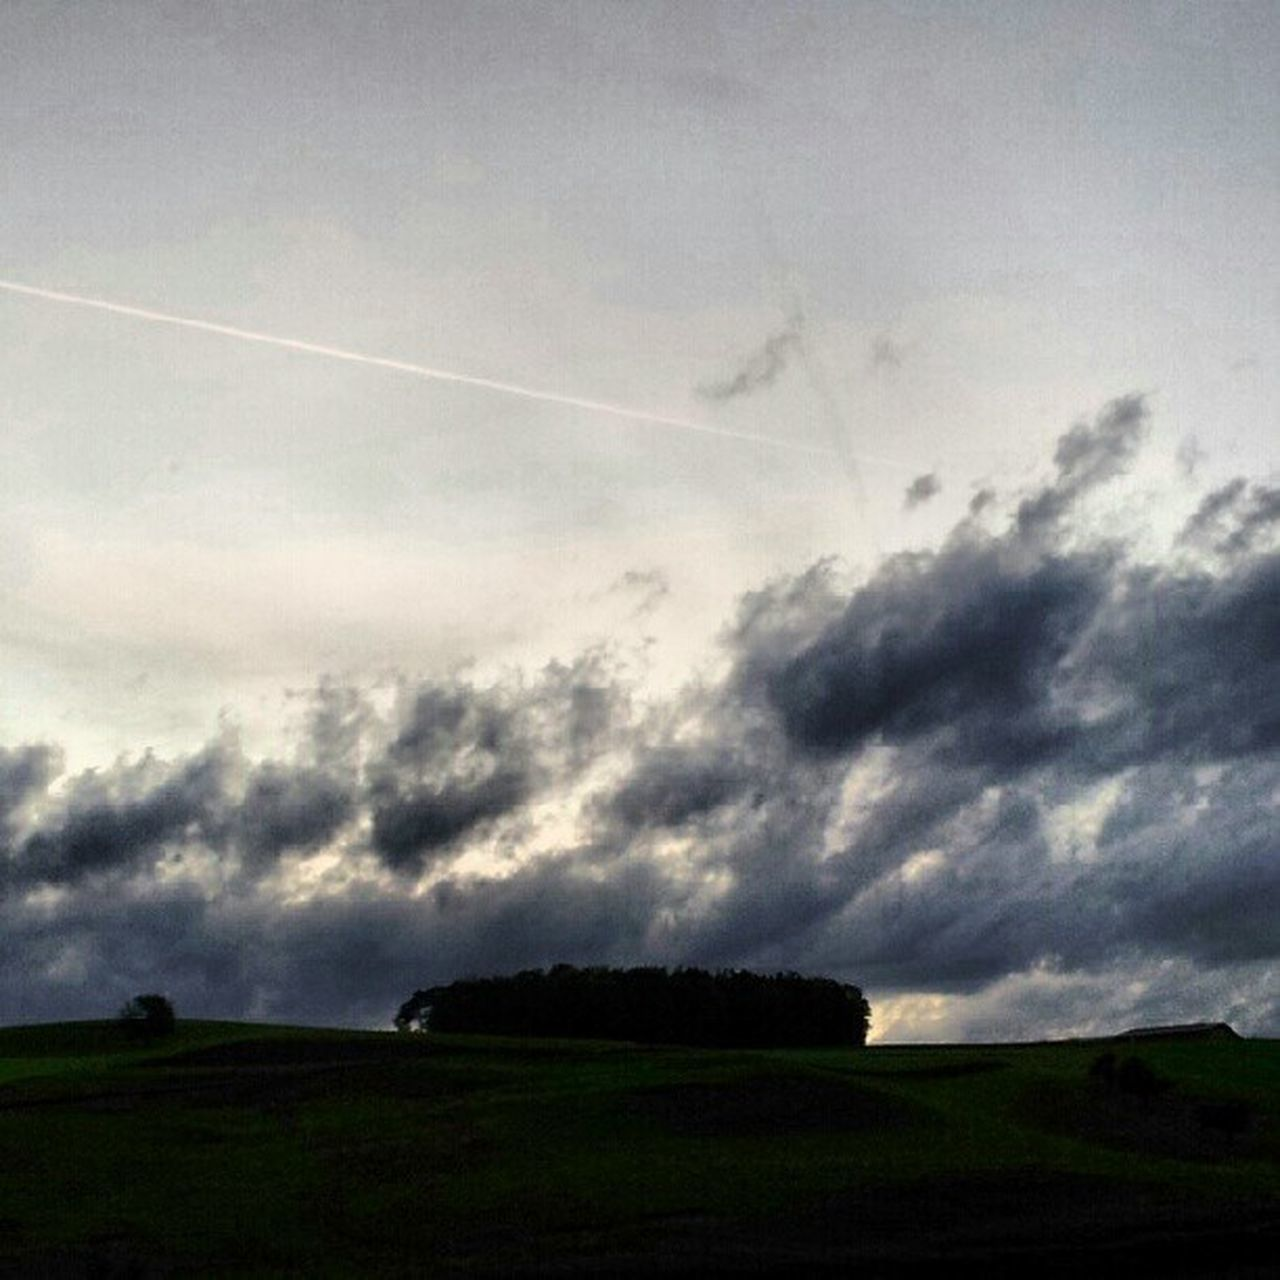 sky, nature, beauty in nature, no people, landscape, cloud - sky, scenics, day, outdoors, vapor trail, contrail, grass, tree